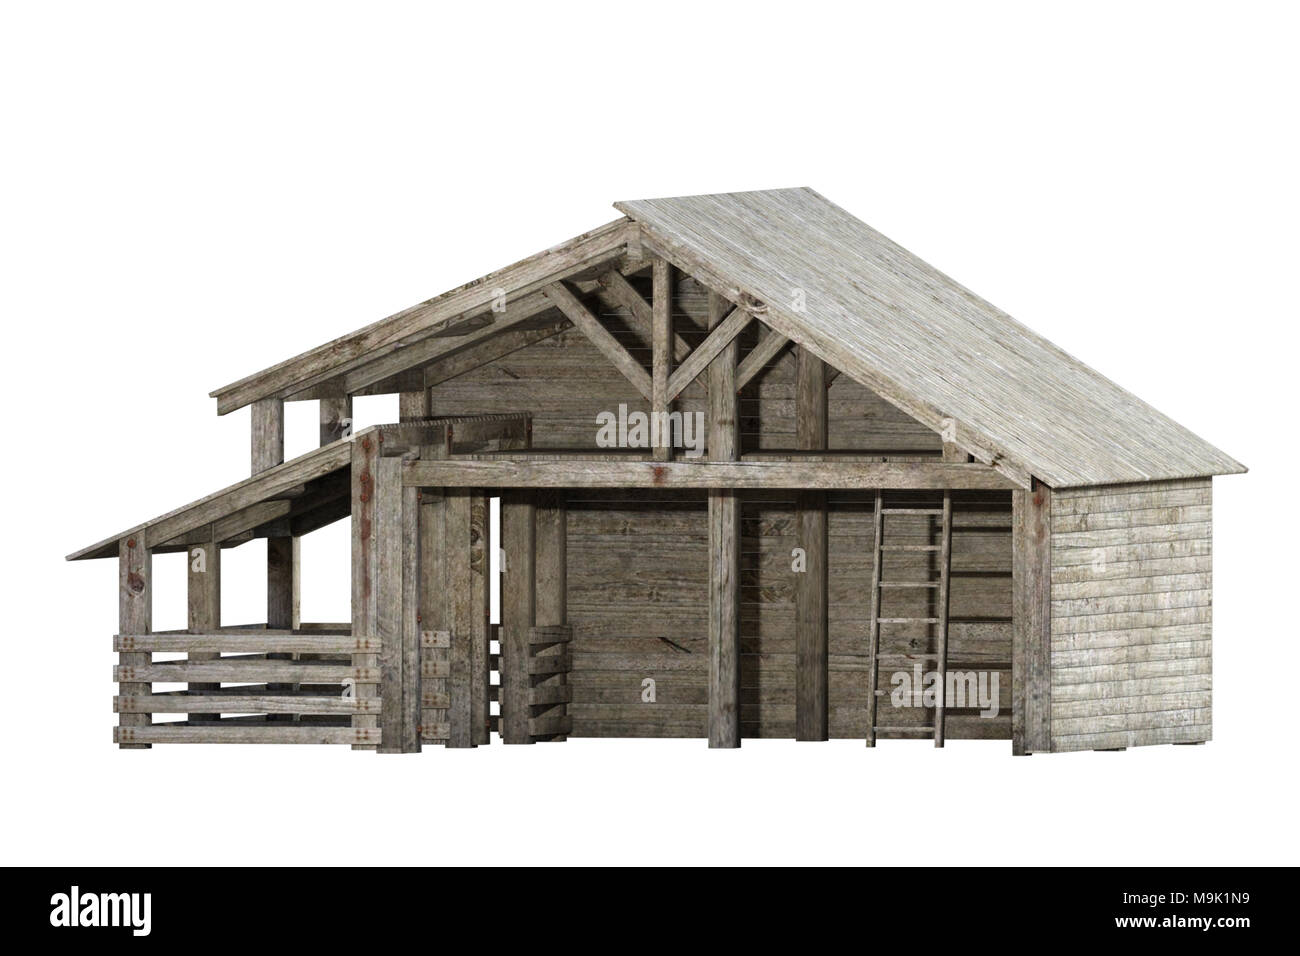 Empty wooden barn isolated on white, 3d render. - Stock Image